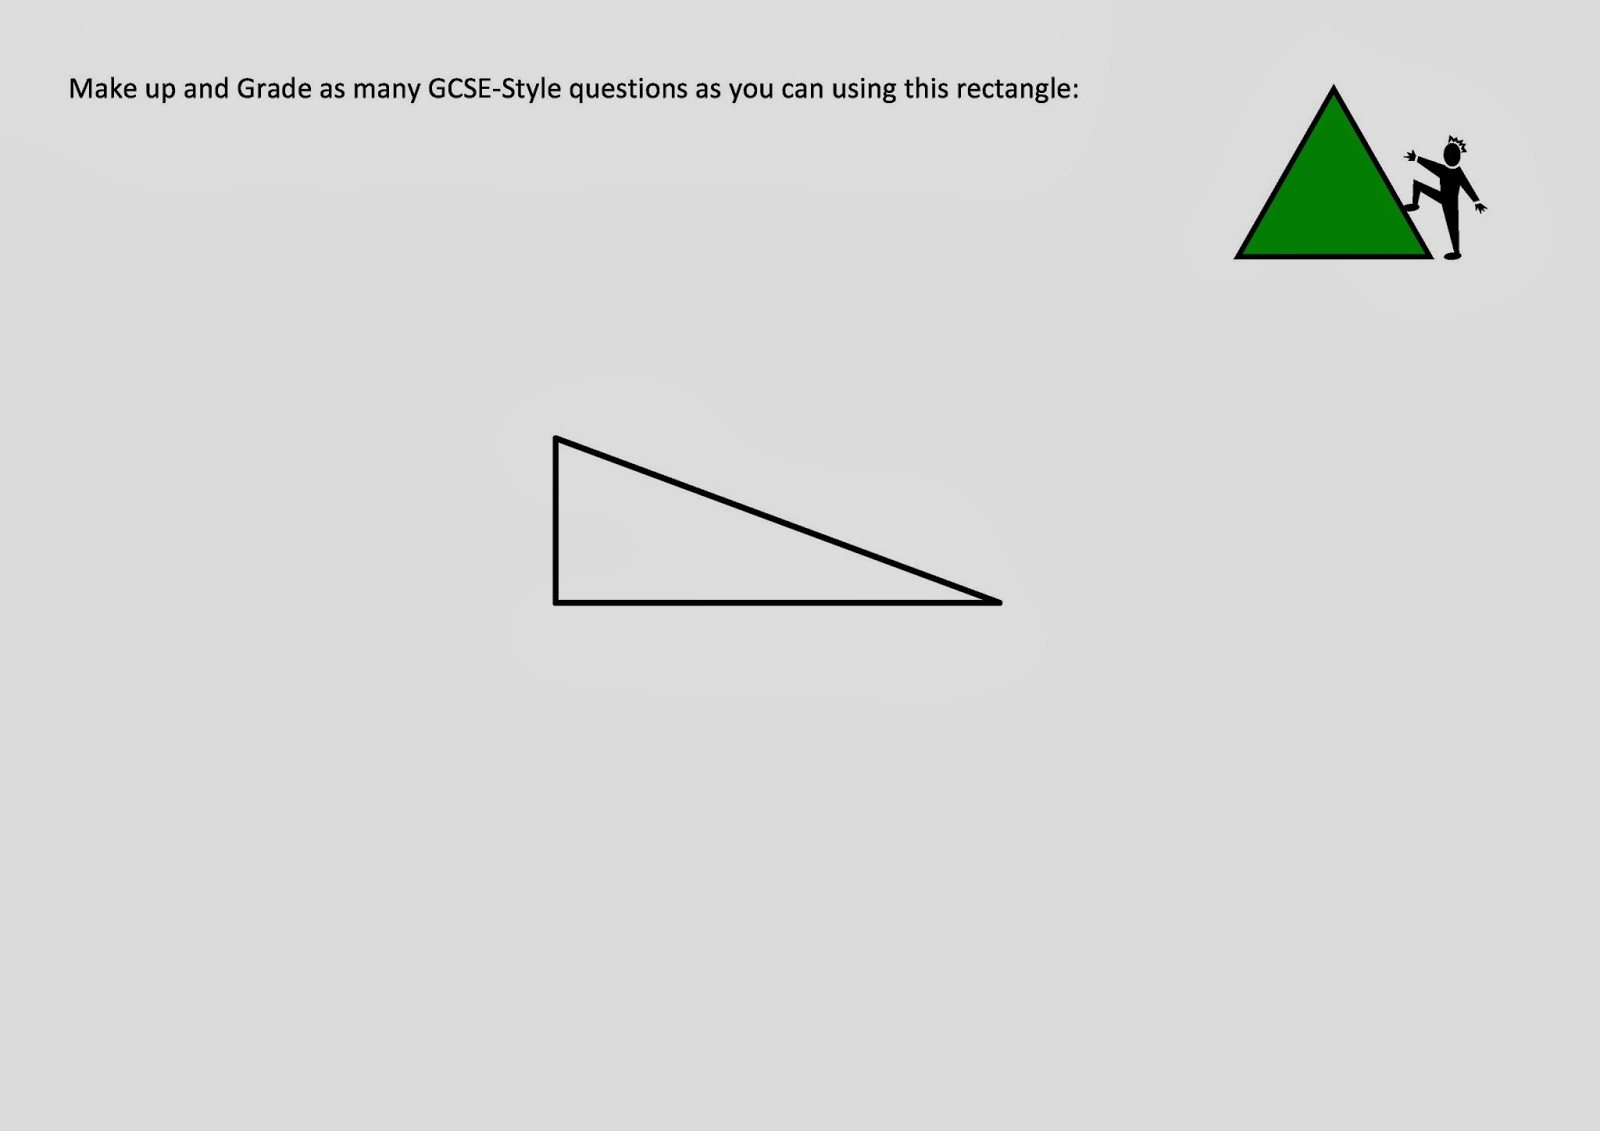 how to tell if 3 numbers make a triangle